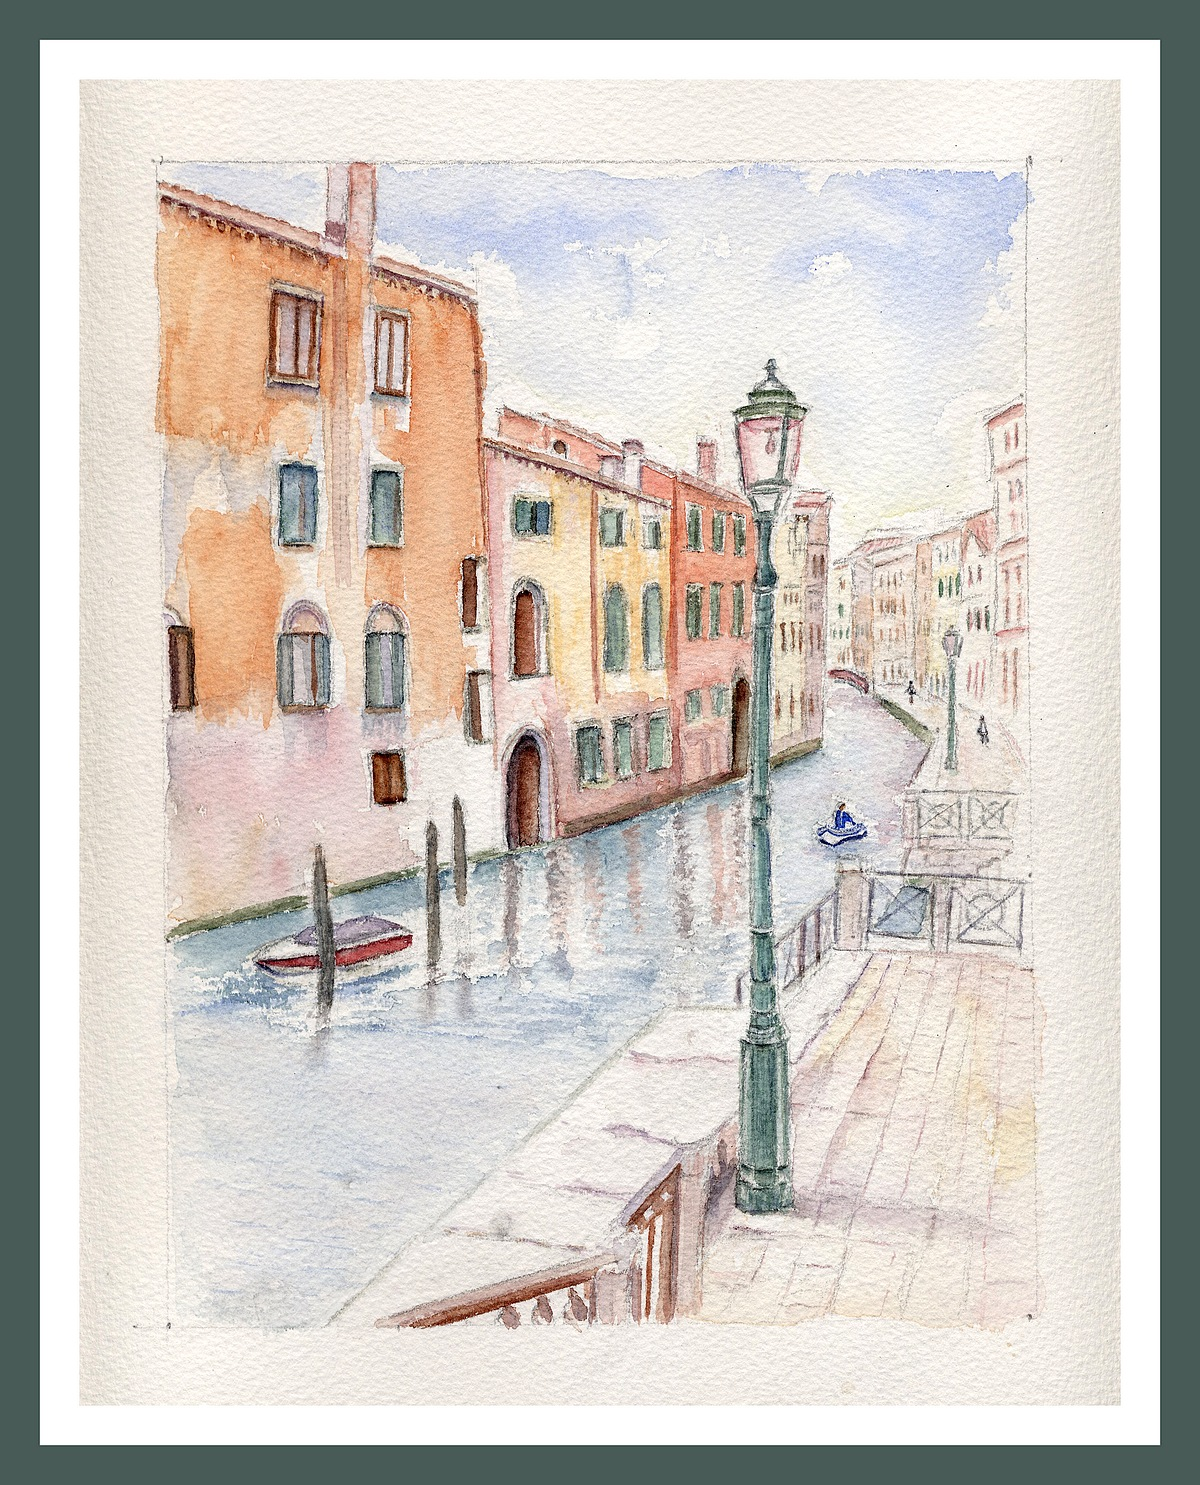 Venise - Rio à San Polo - Aquarelle Copyright Christiane Rau 2011 d'après photo de Michèle Granger